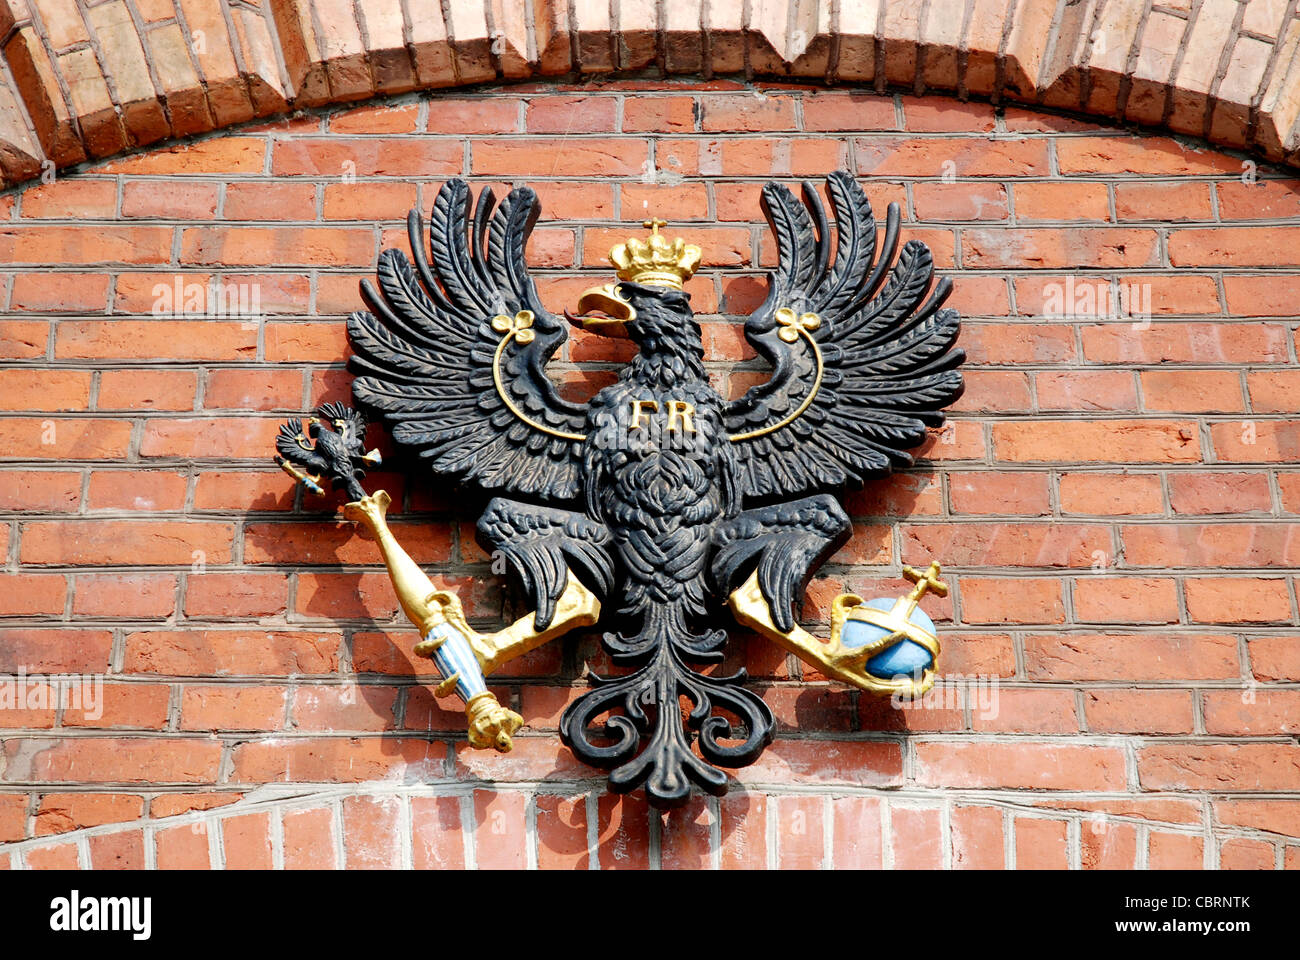 The Prussian coat of arms over the entrance of the Spandau Citadel in Berlin. - Stock Image